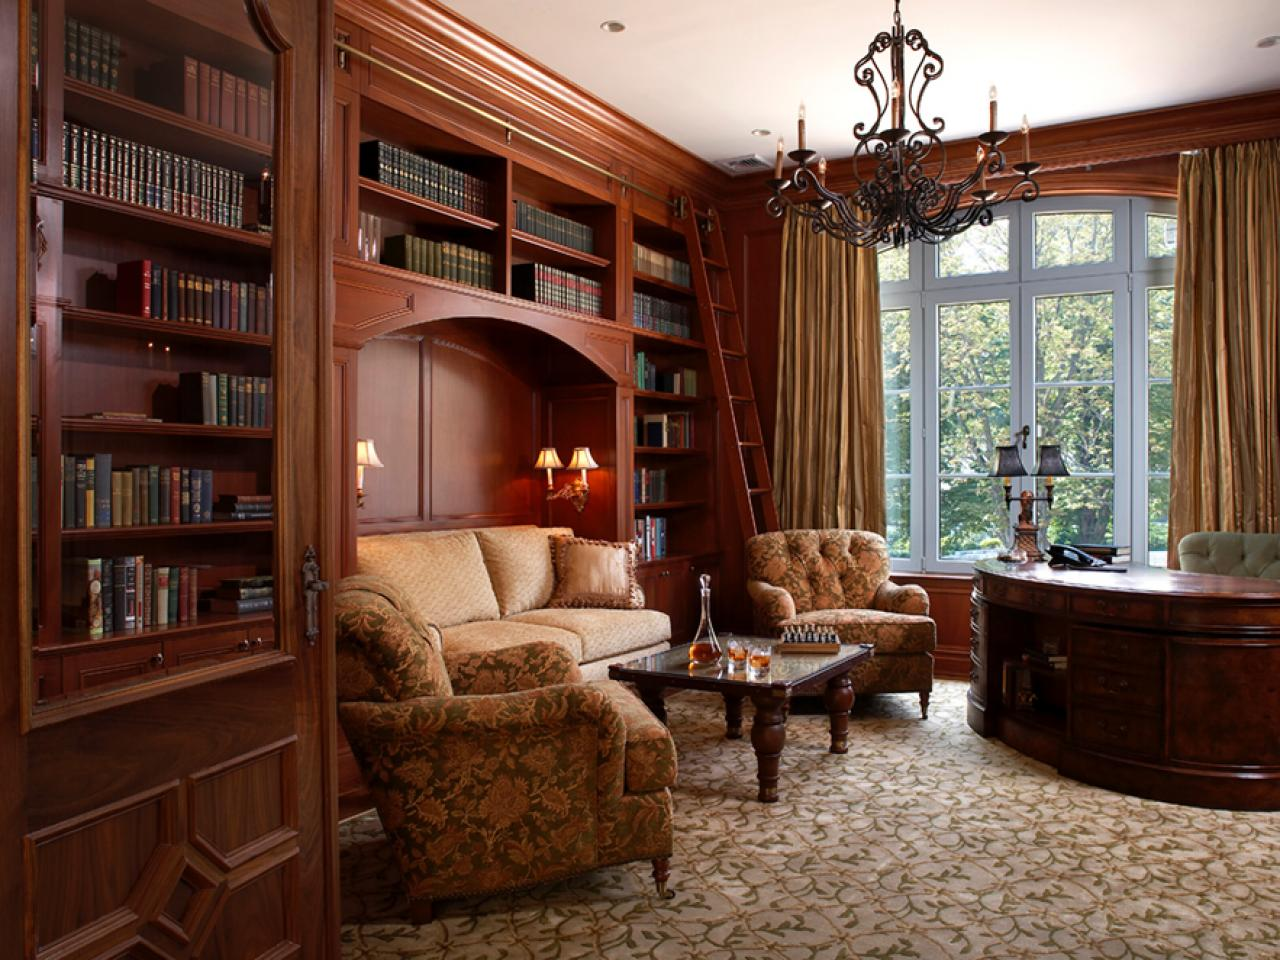 12 Dreamy Home Libraries Decorating And Design Ideas For Interior Rooms Hgtv